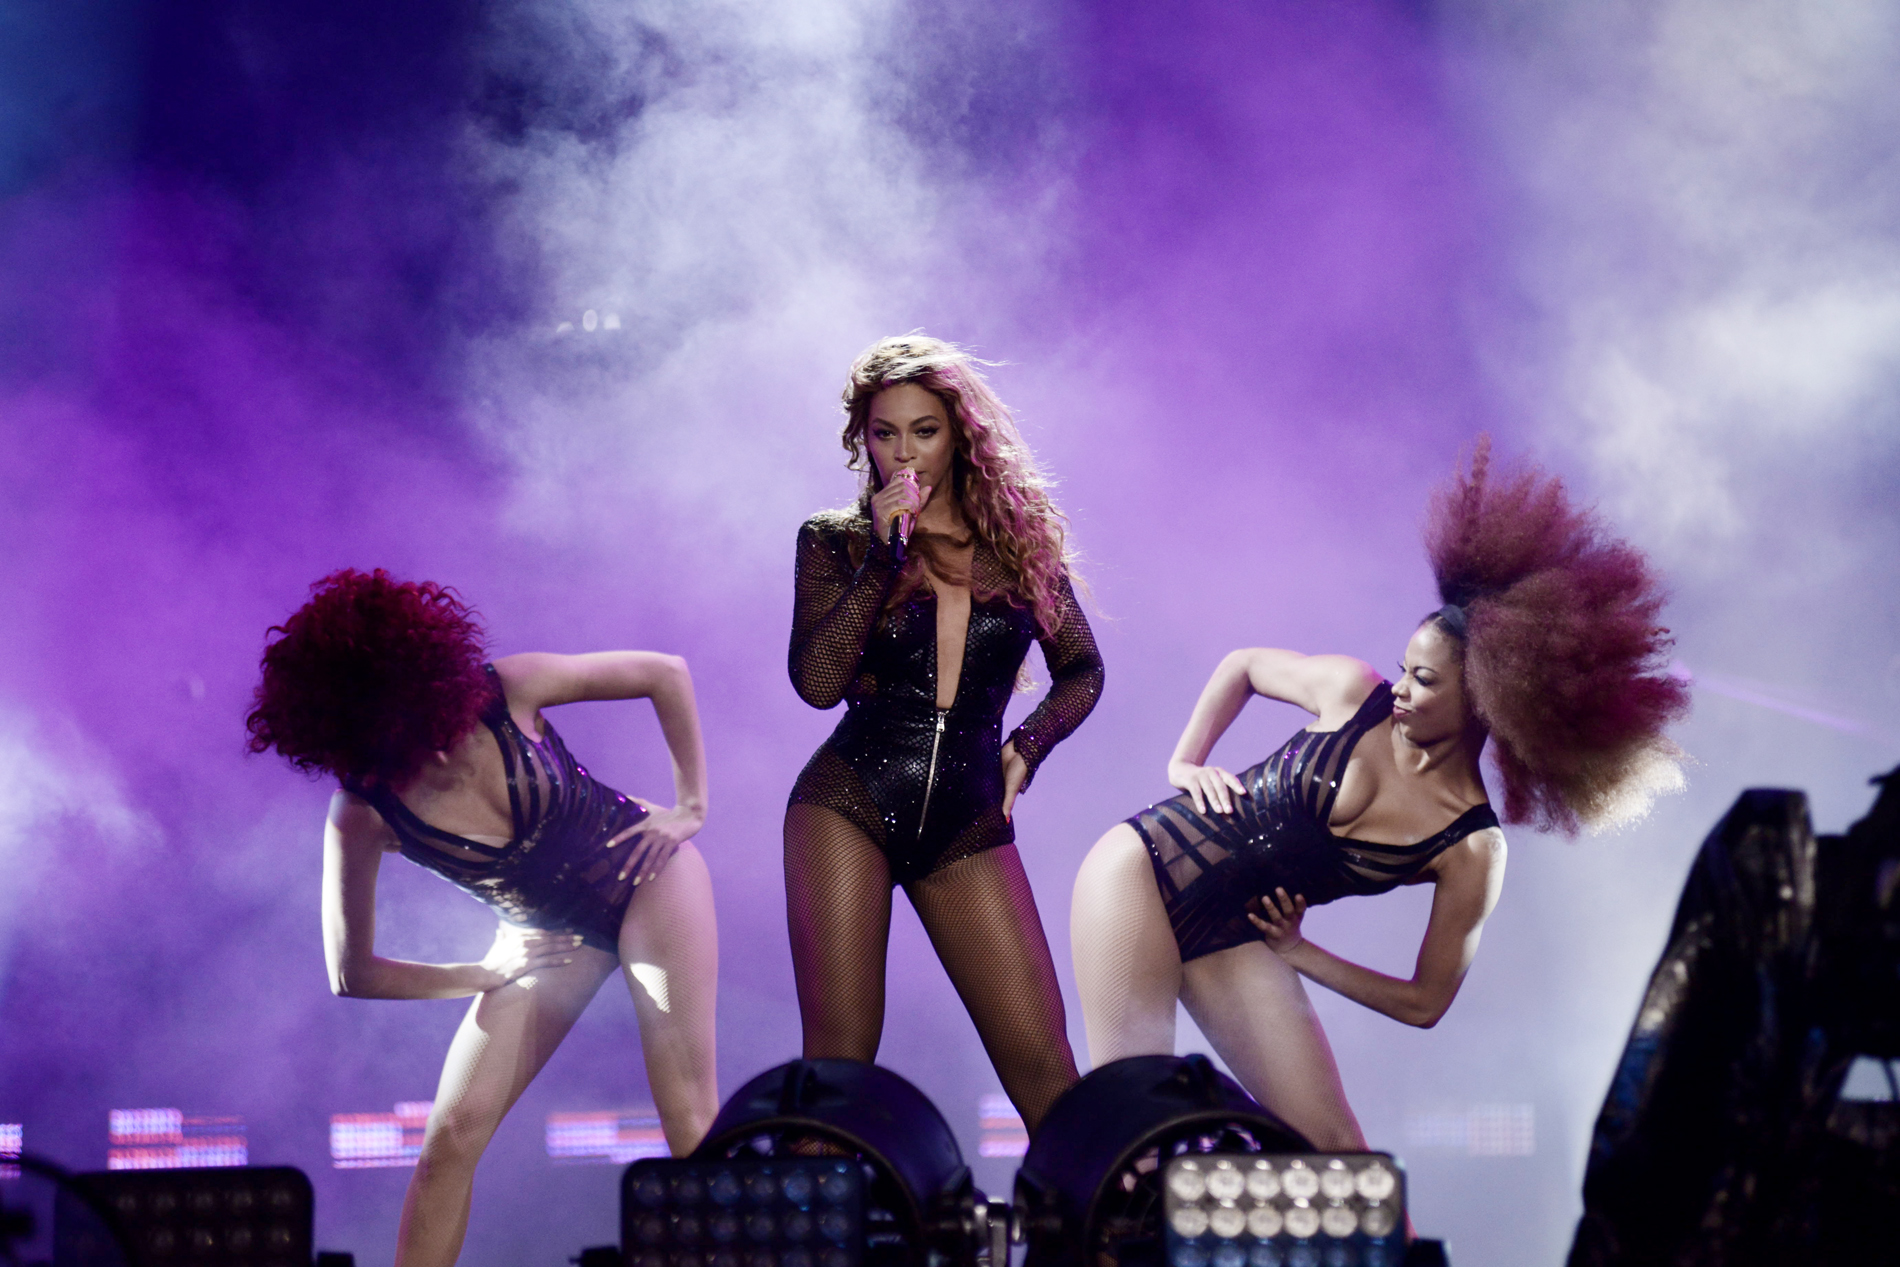 FOXBOROUGH, MA - JULY 1: Beyoncé performs on the On The Run Tour at Gillette Stadium on Tuesday, July 1, 2014, in Foxborough, Massachusetts. (Photo by Mason Poole/Parkwood Entertainment/PictureGroup)